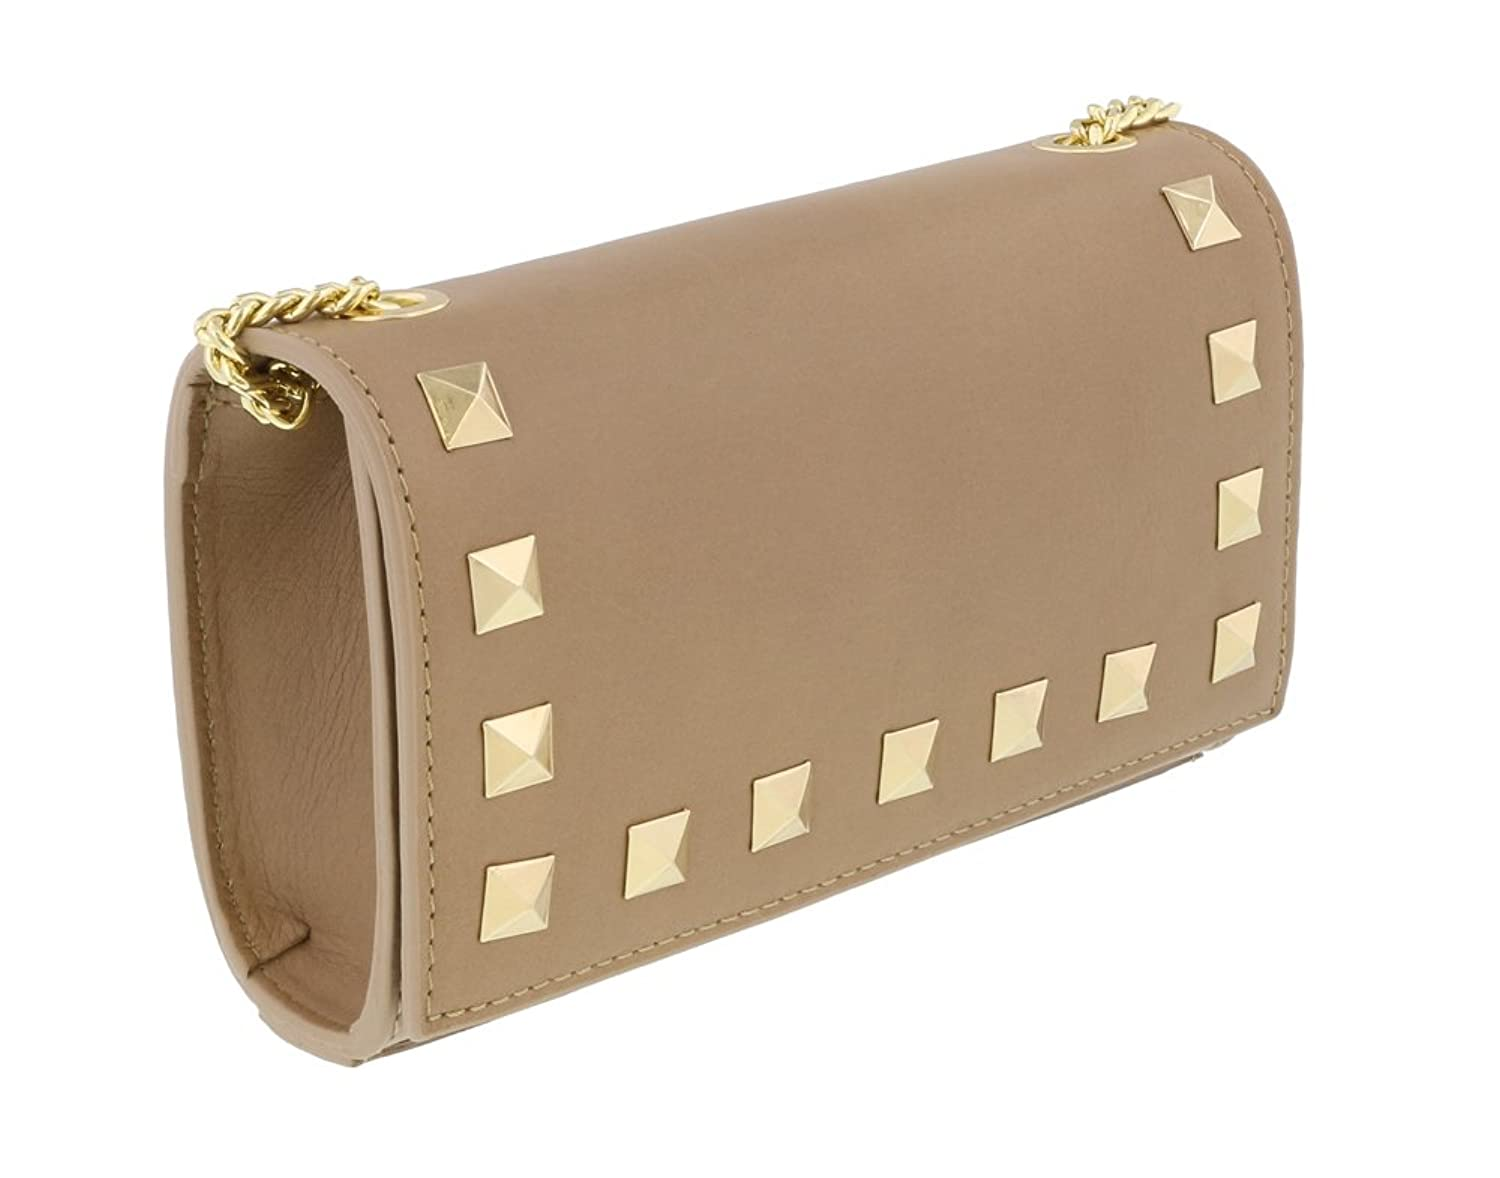 Scheilan Camel Leather Studded Mini Crossbody/Shoulder Bag